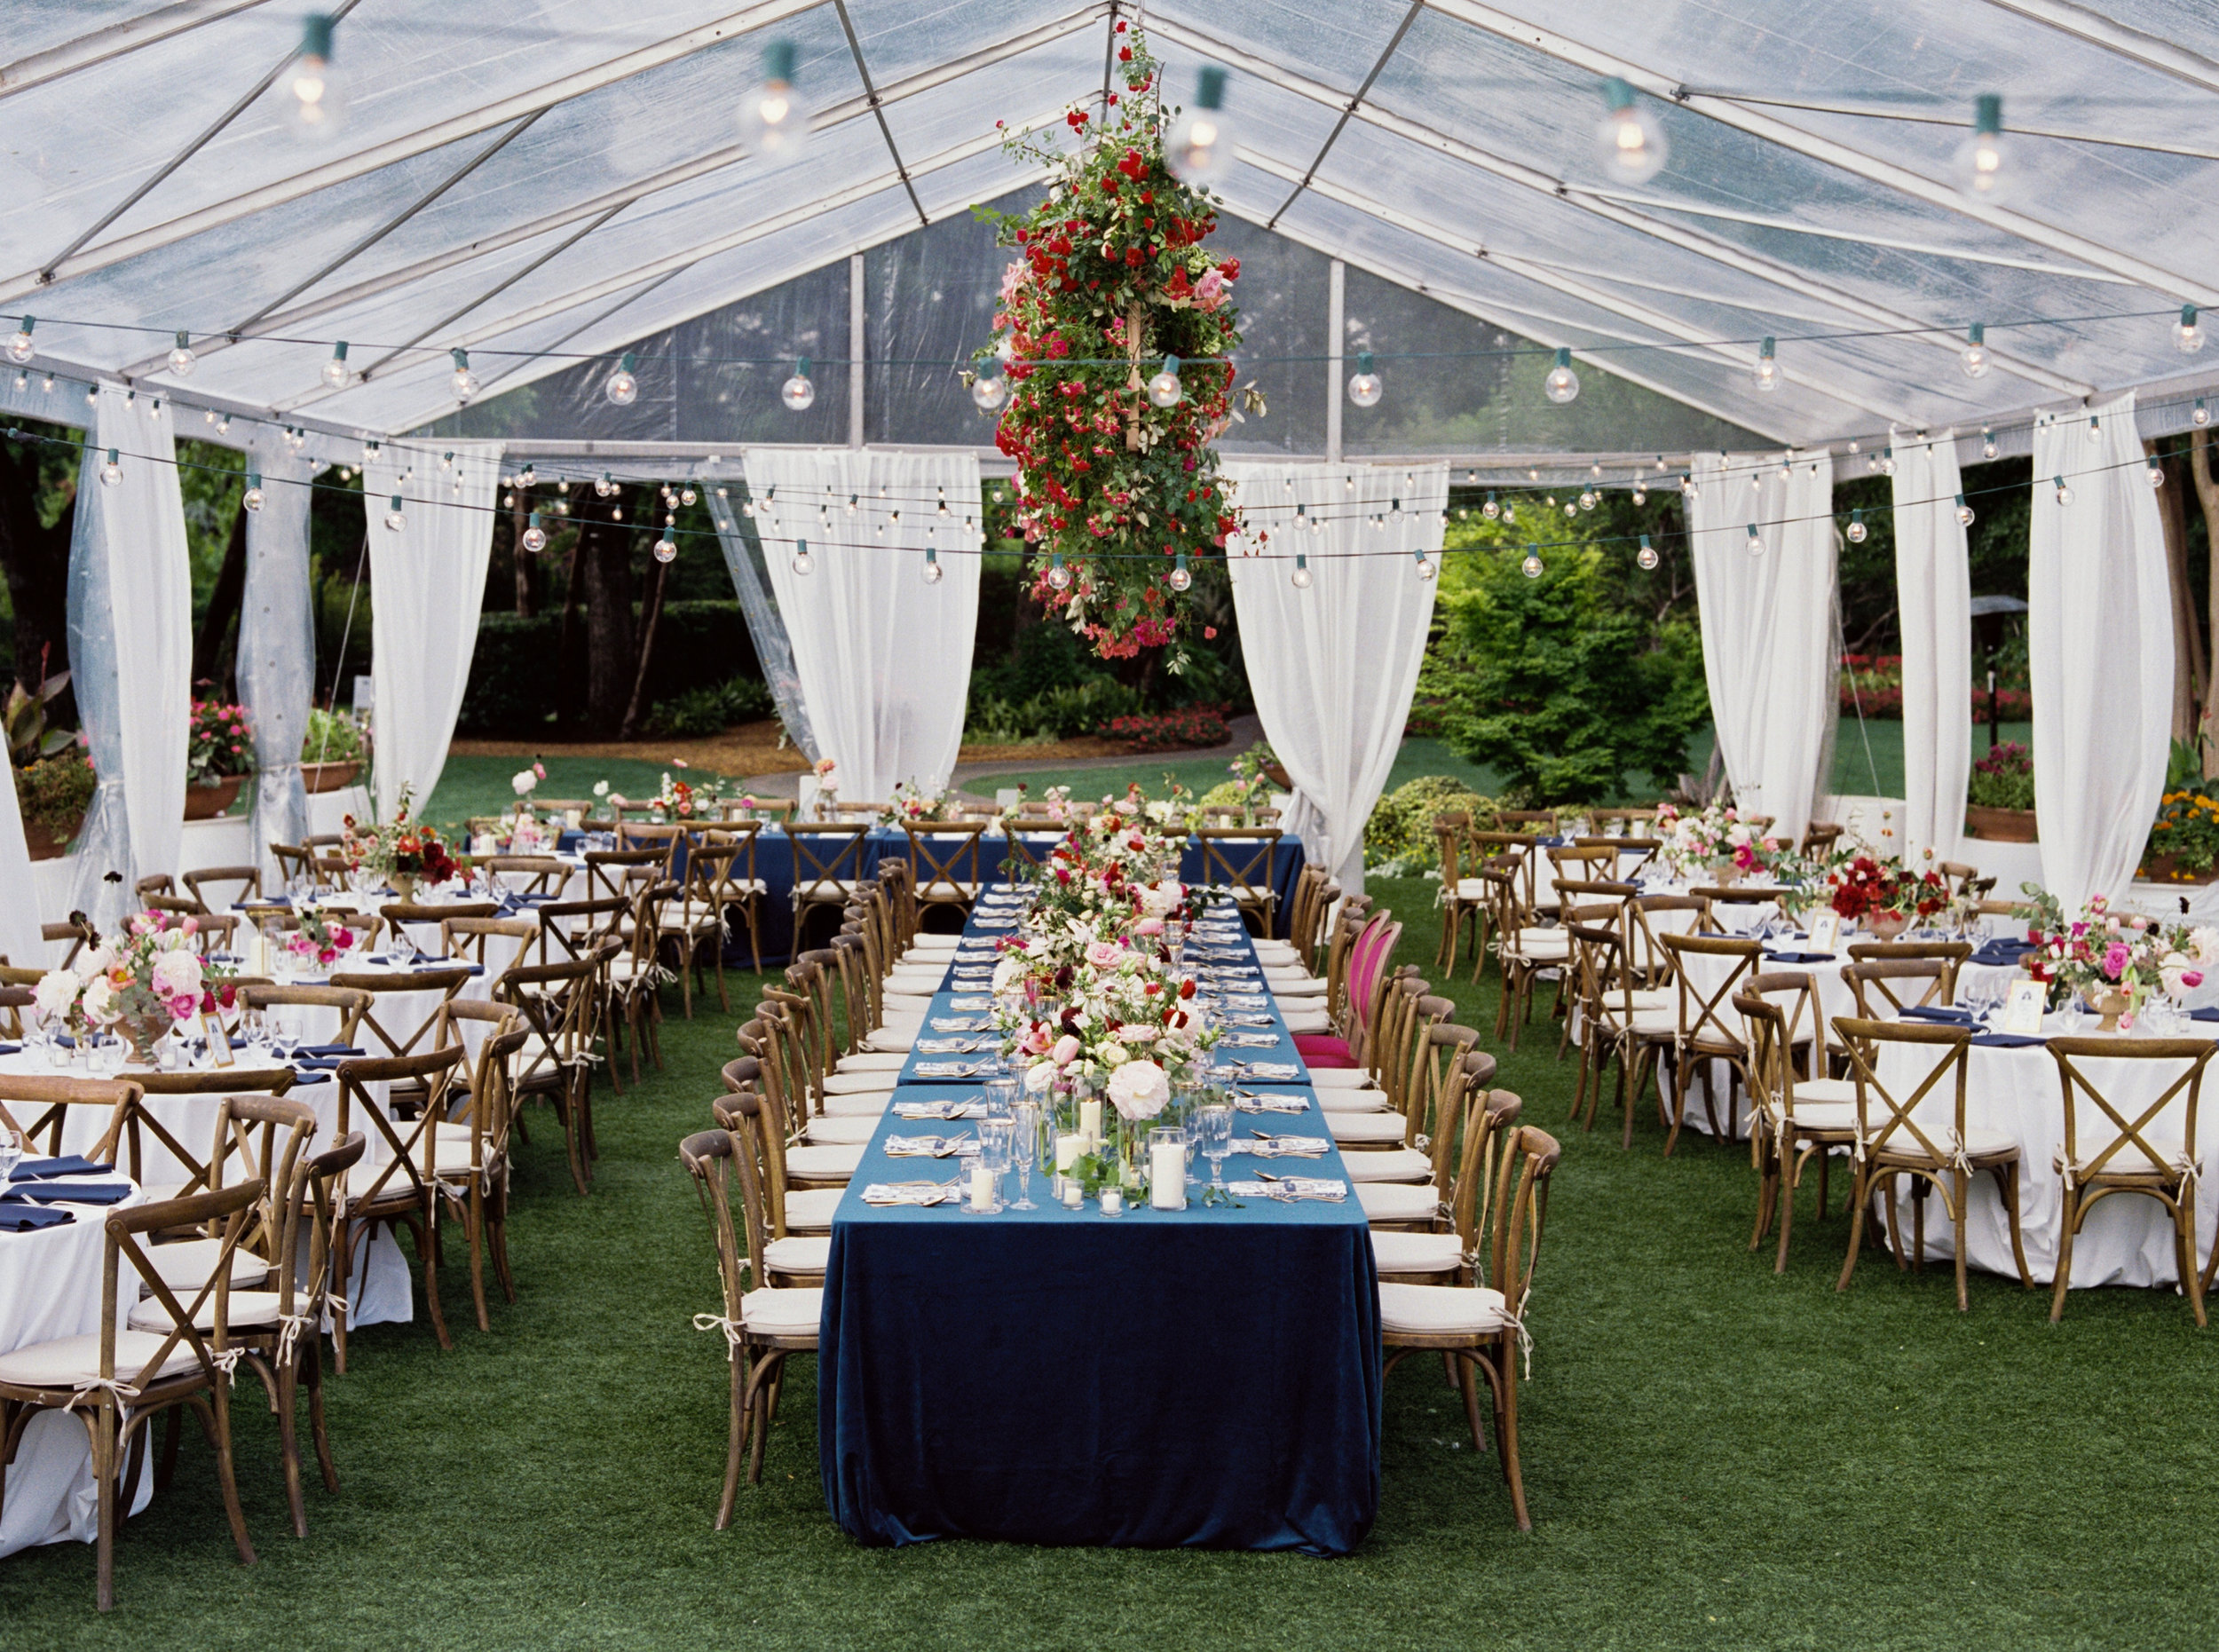 Ana-and-Nick-Reception-The-Dallas-Arboretum-Ivory-and-Vine.jpg